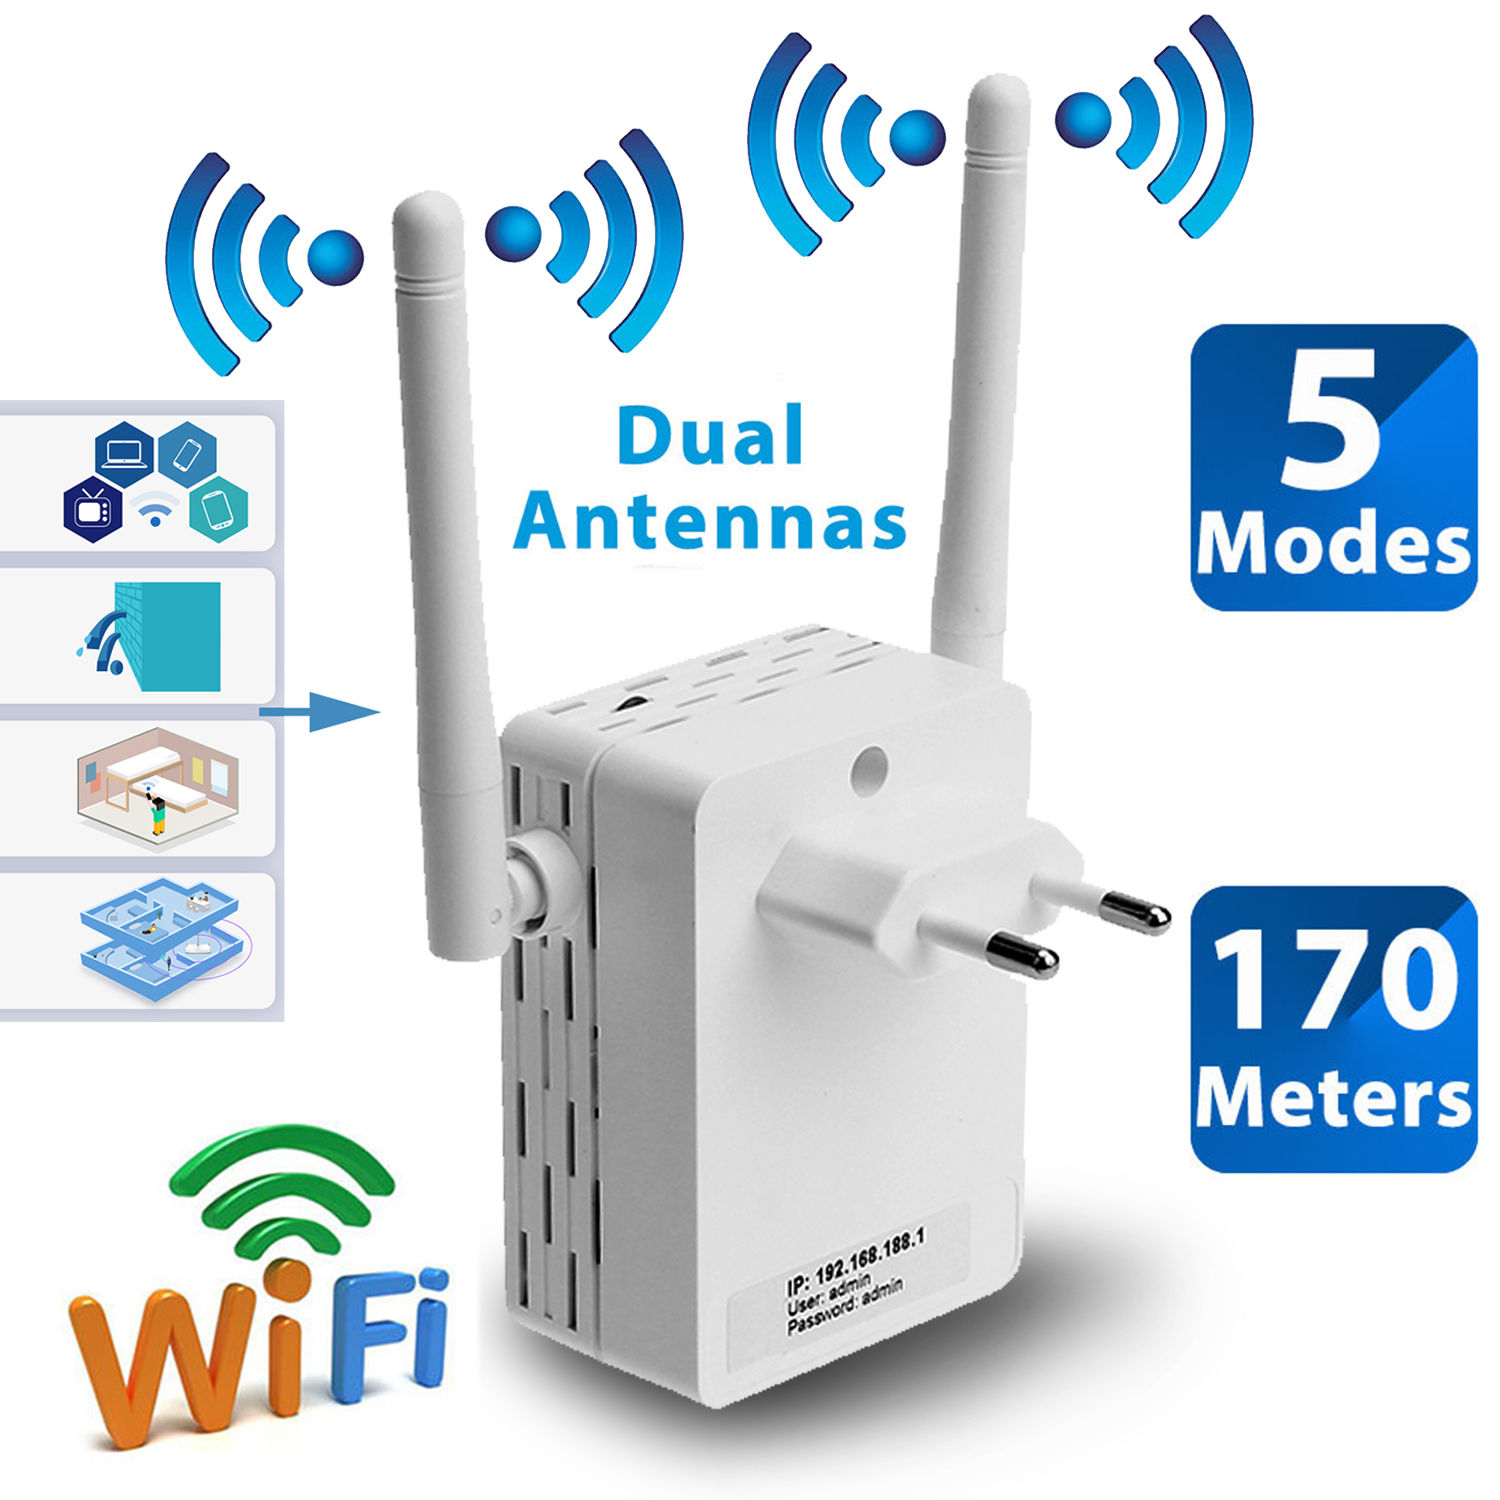 Wifi range extender wireless booster 300m home network - Wireless extender with ethernet ports ...